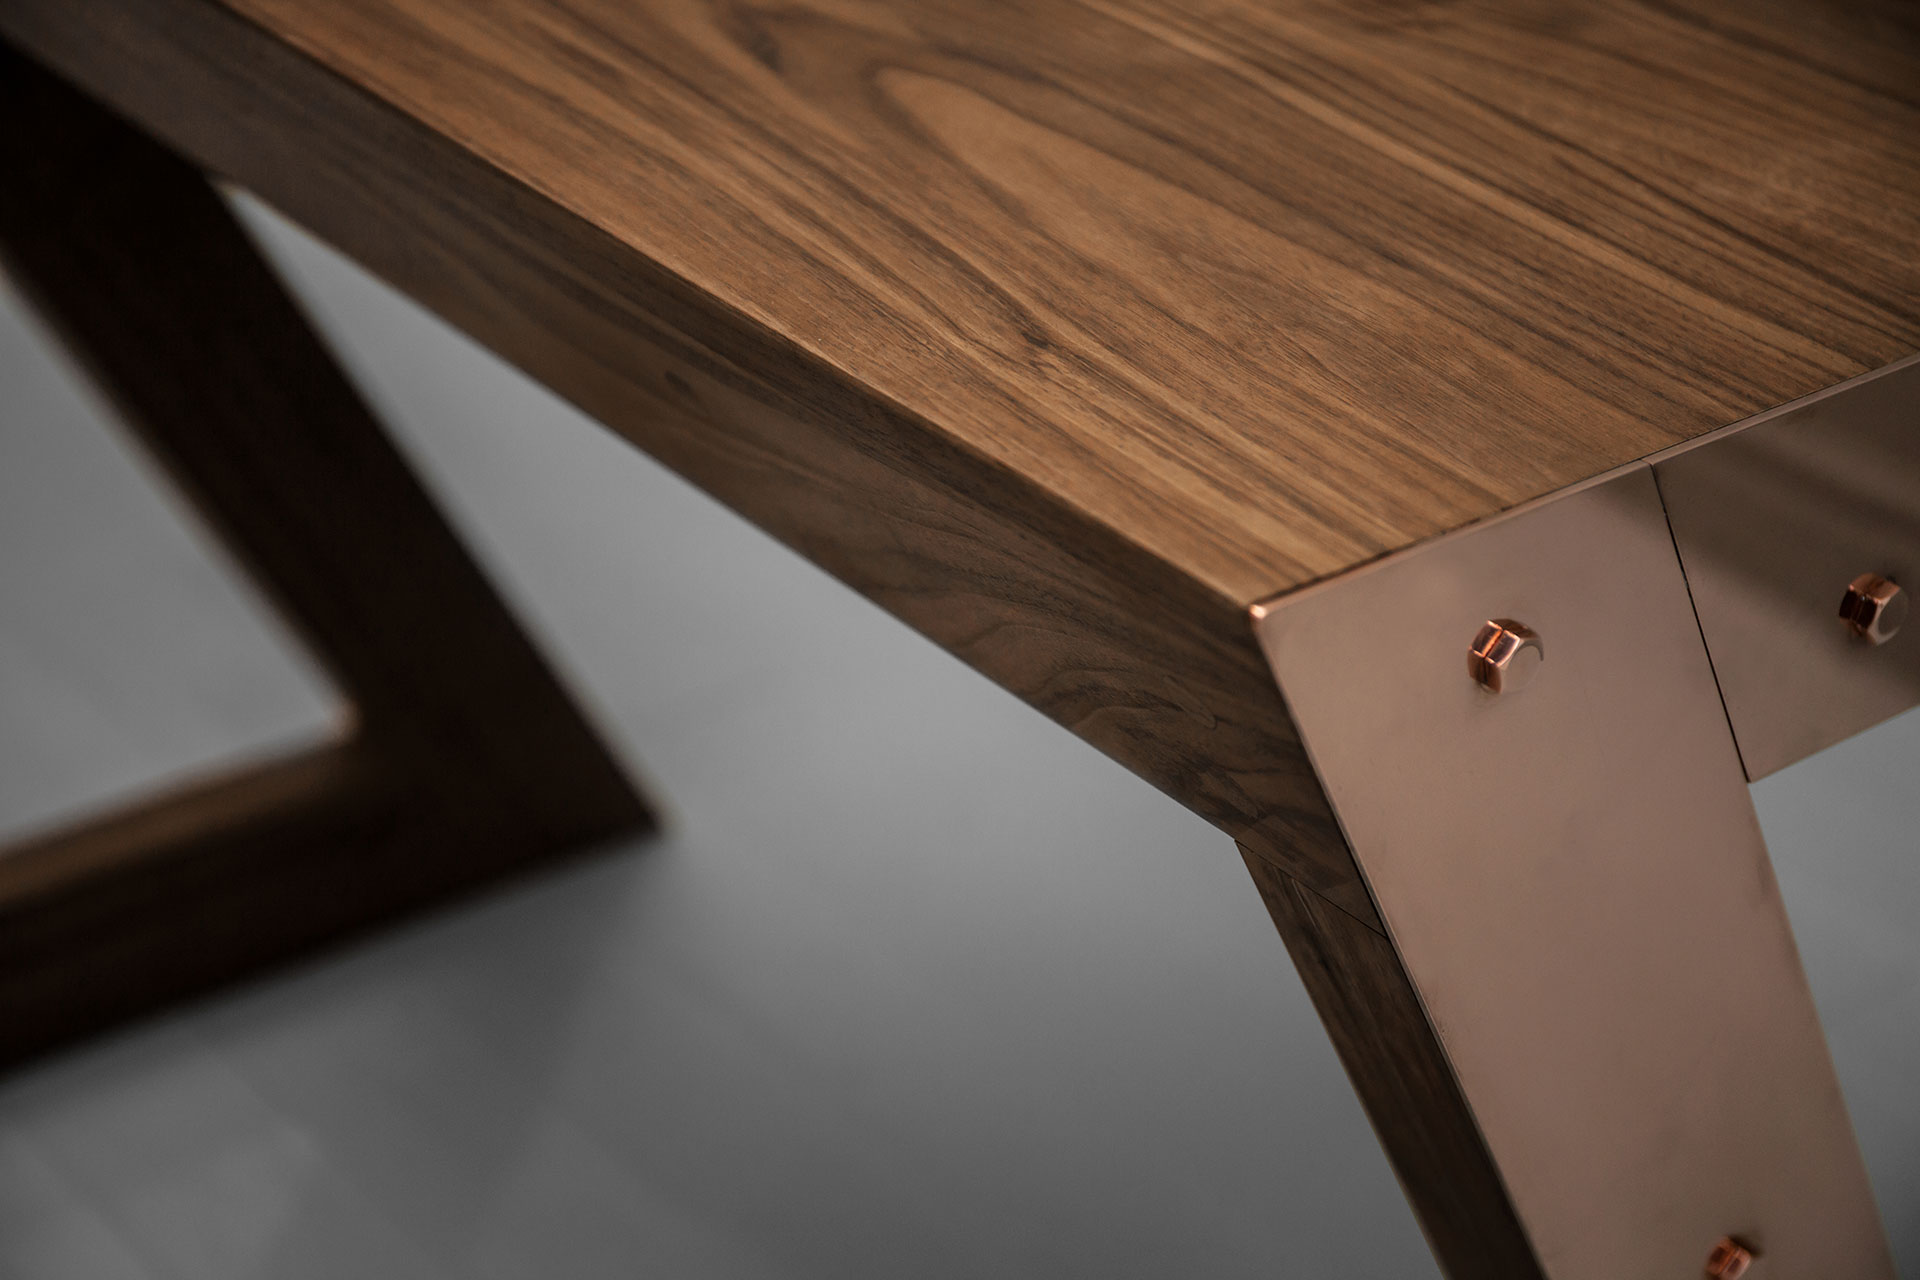 Copper metal and solid American walnut wood